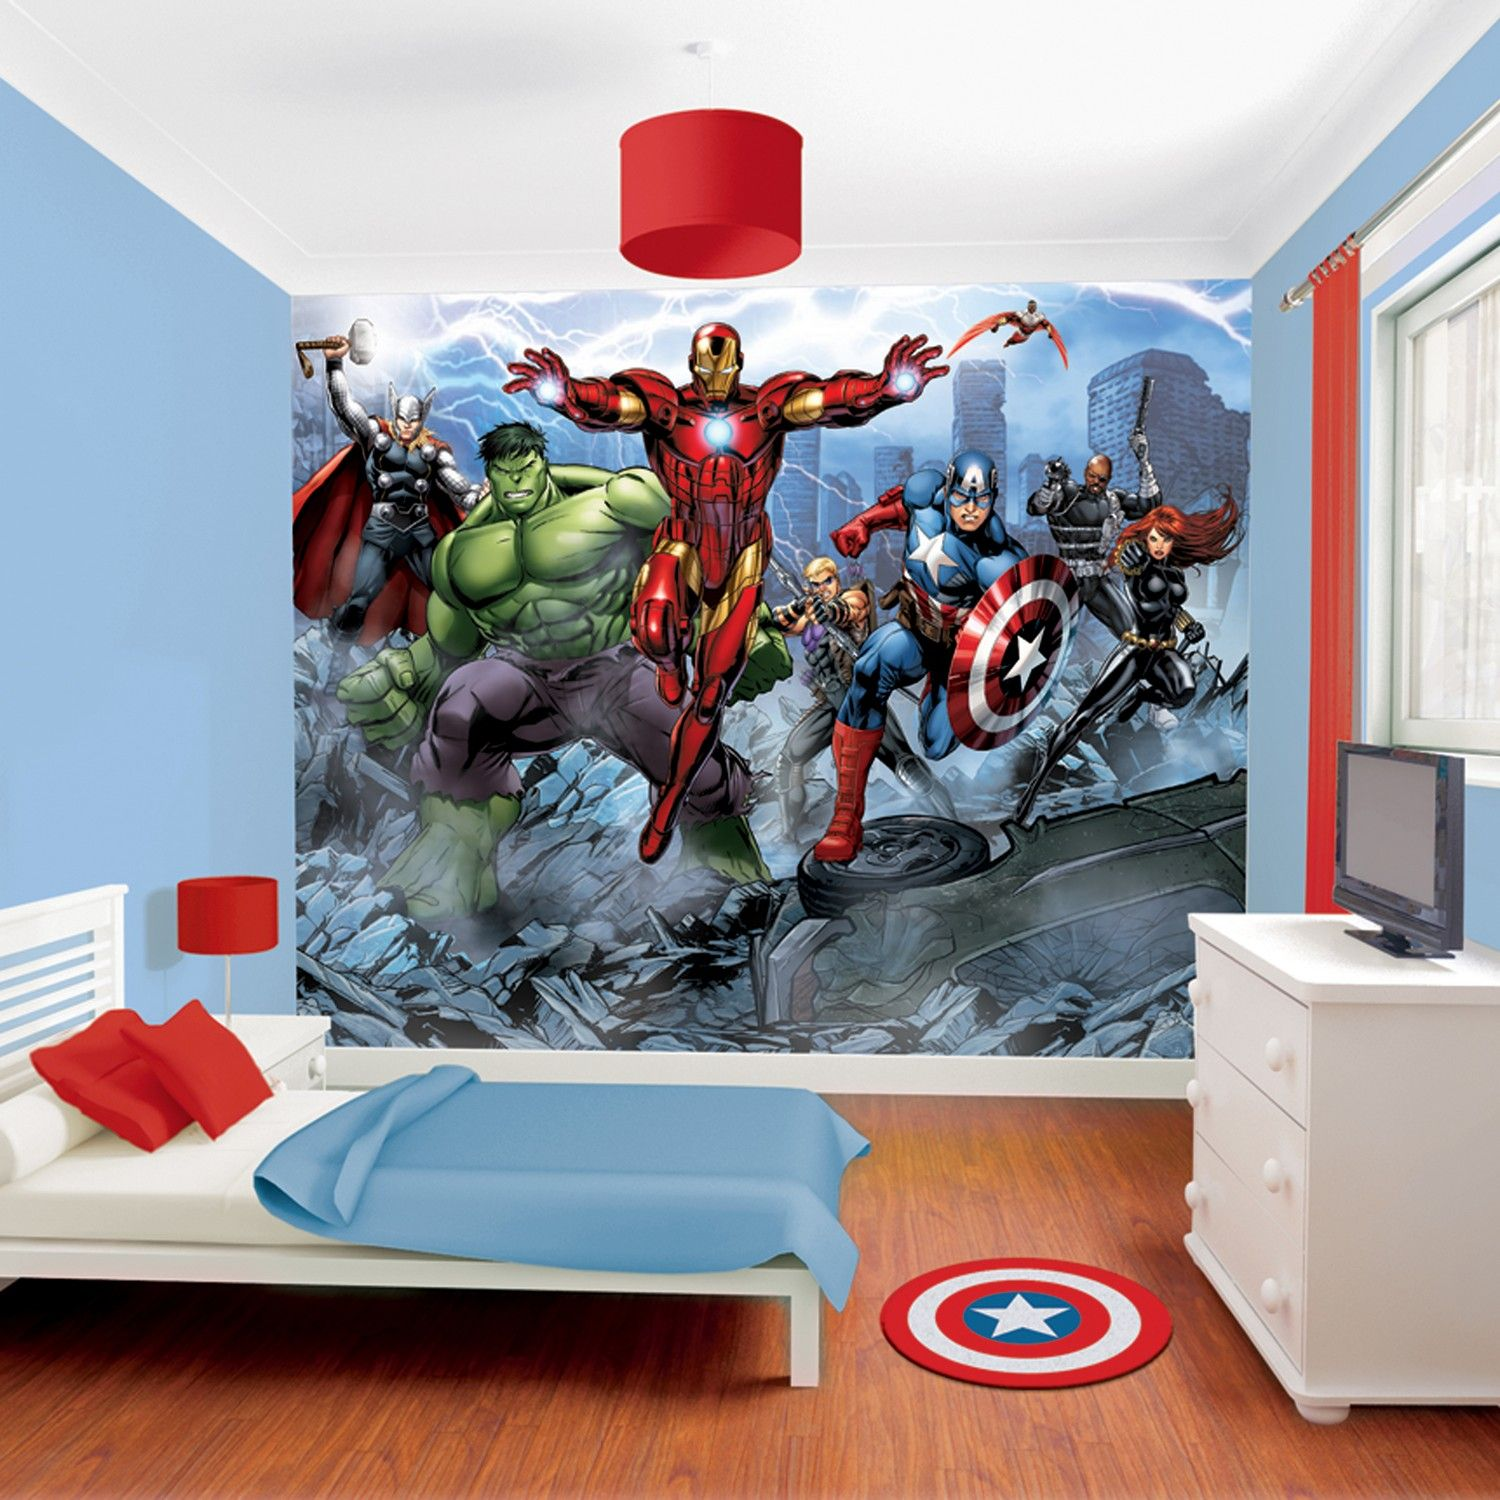 Diy Boy Bedroom Ideas Bedroom Wallpaper Designs Bedroom Sets Decorating Ideas Brown Black And White Bedroom: Buy Avengers Assemble Mural